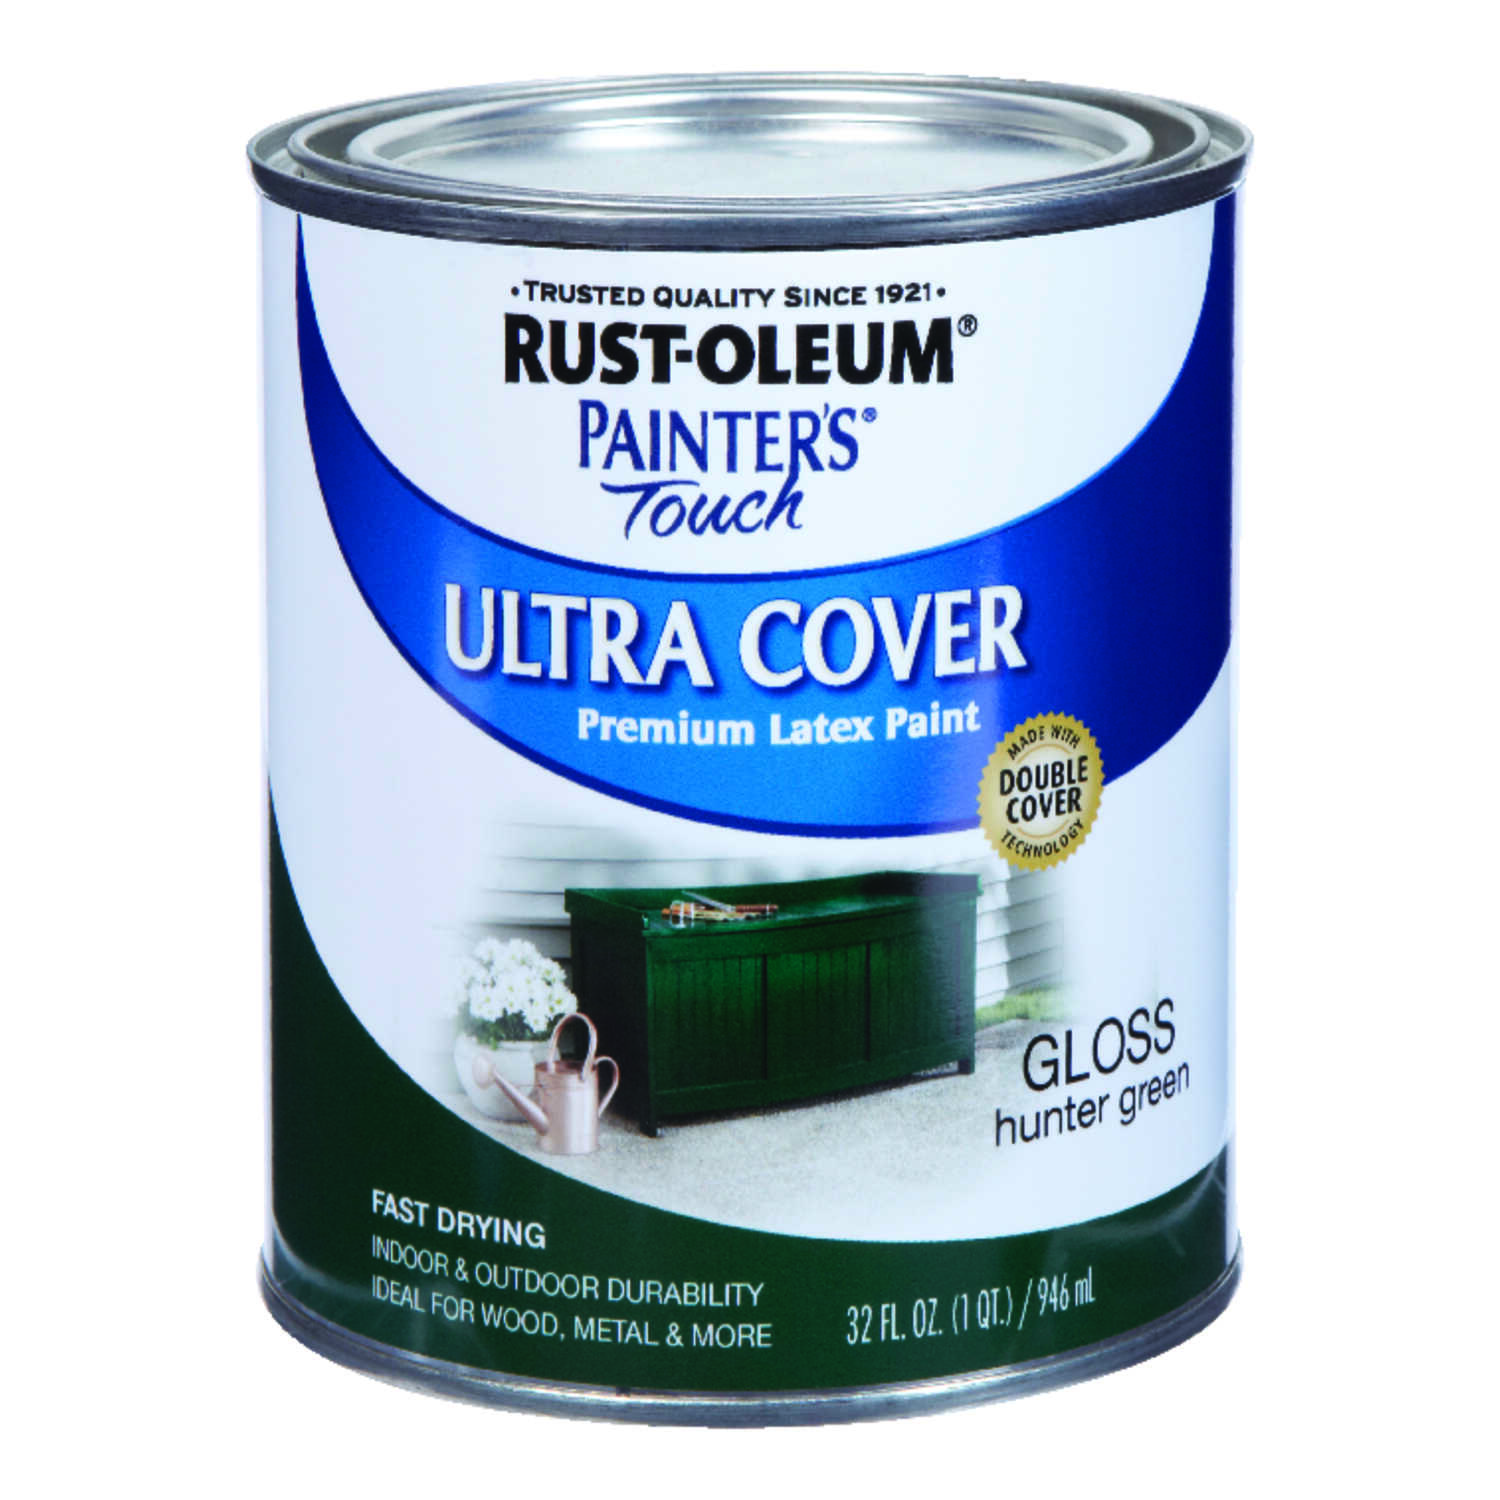 Rust-Oleum  Painters Touch Ultra Cover  Gloss  Hunter Green  1 qt. Indoor and Outdoor  Paint